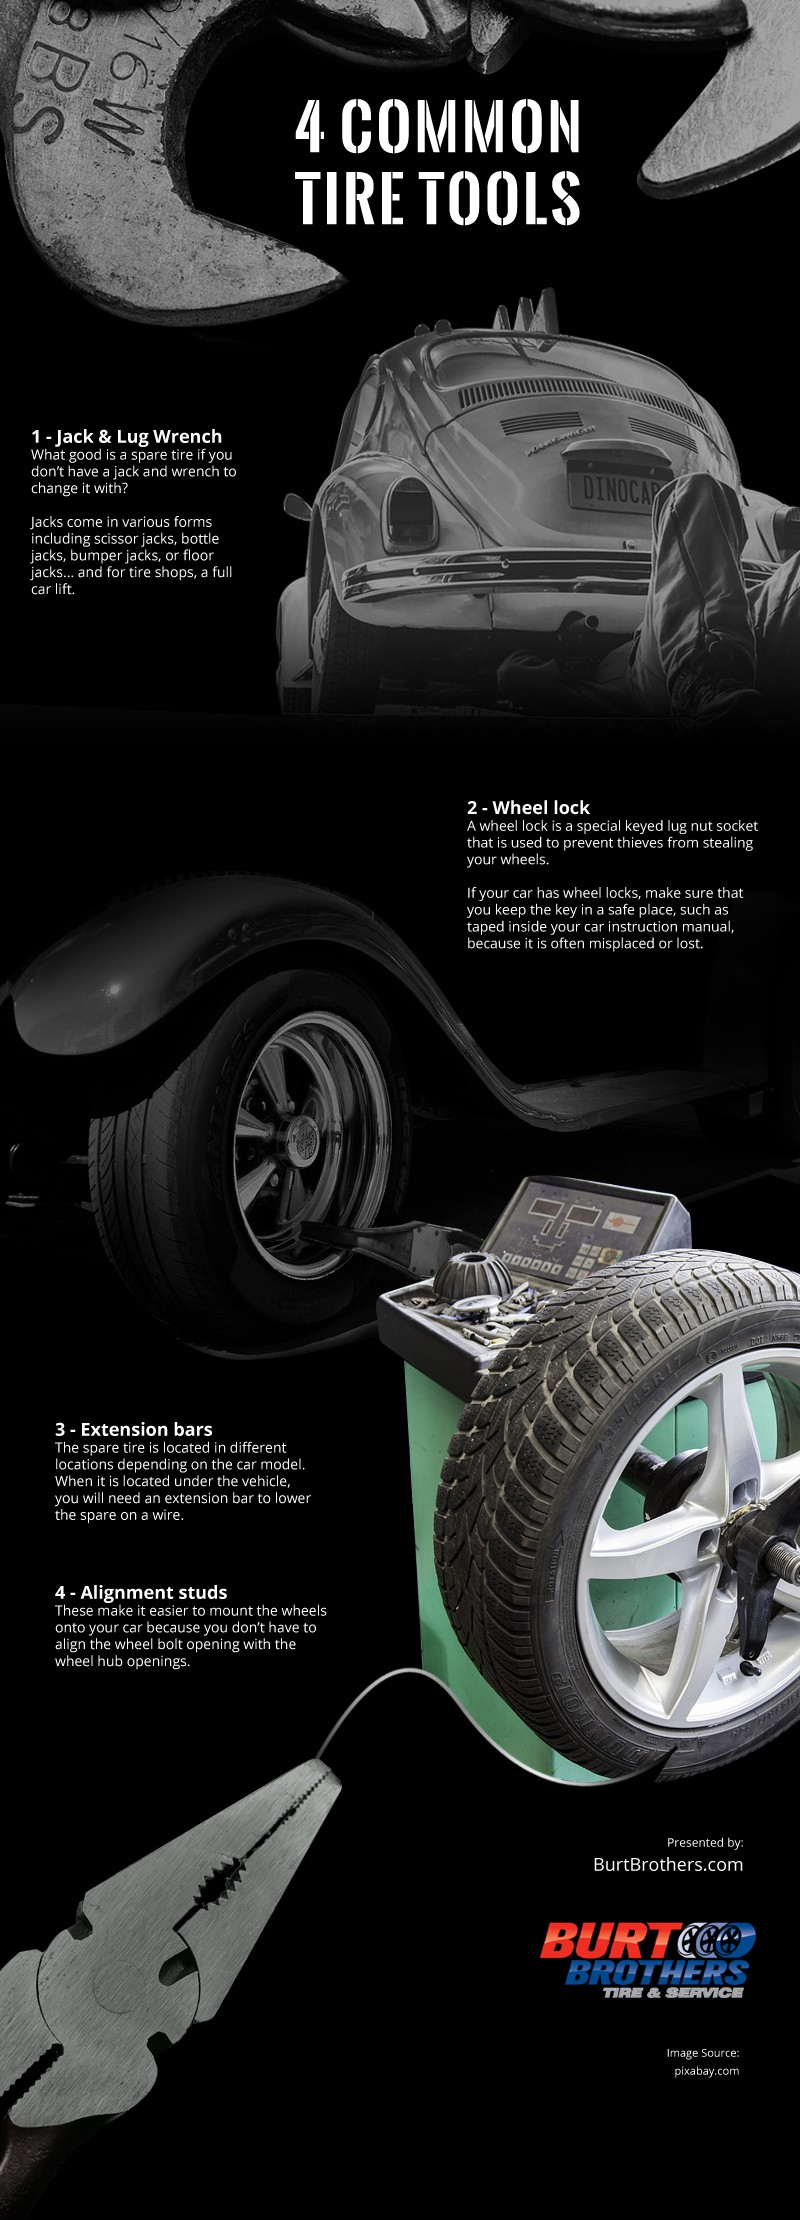 4 Common Tire Tools [infographic]